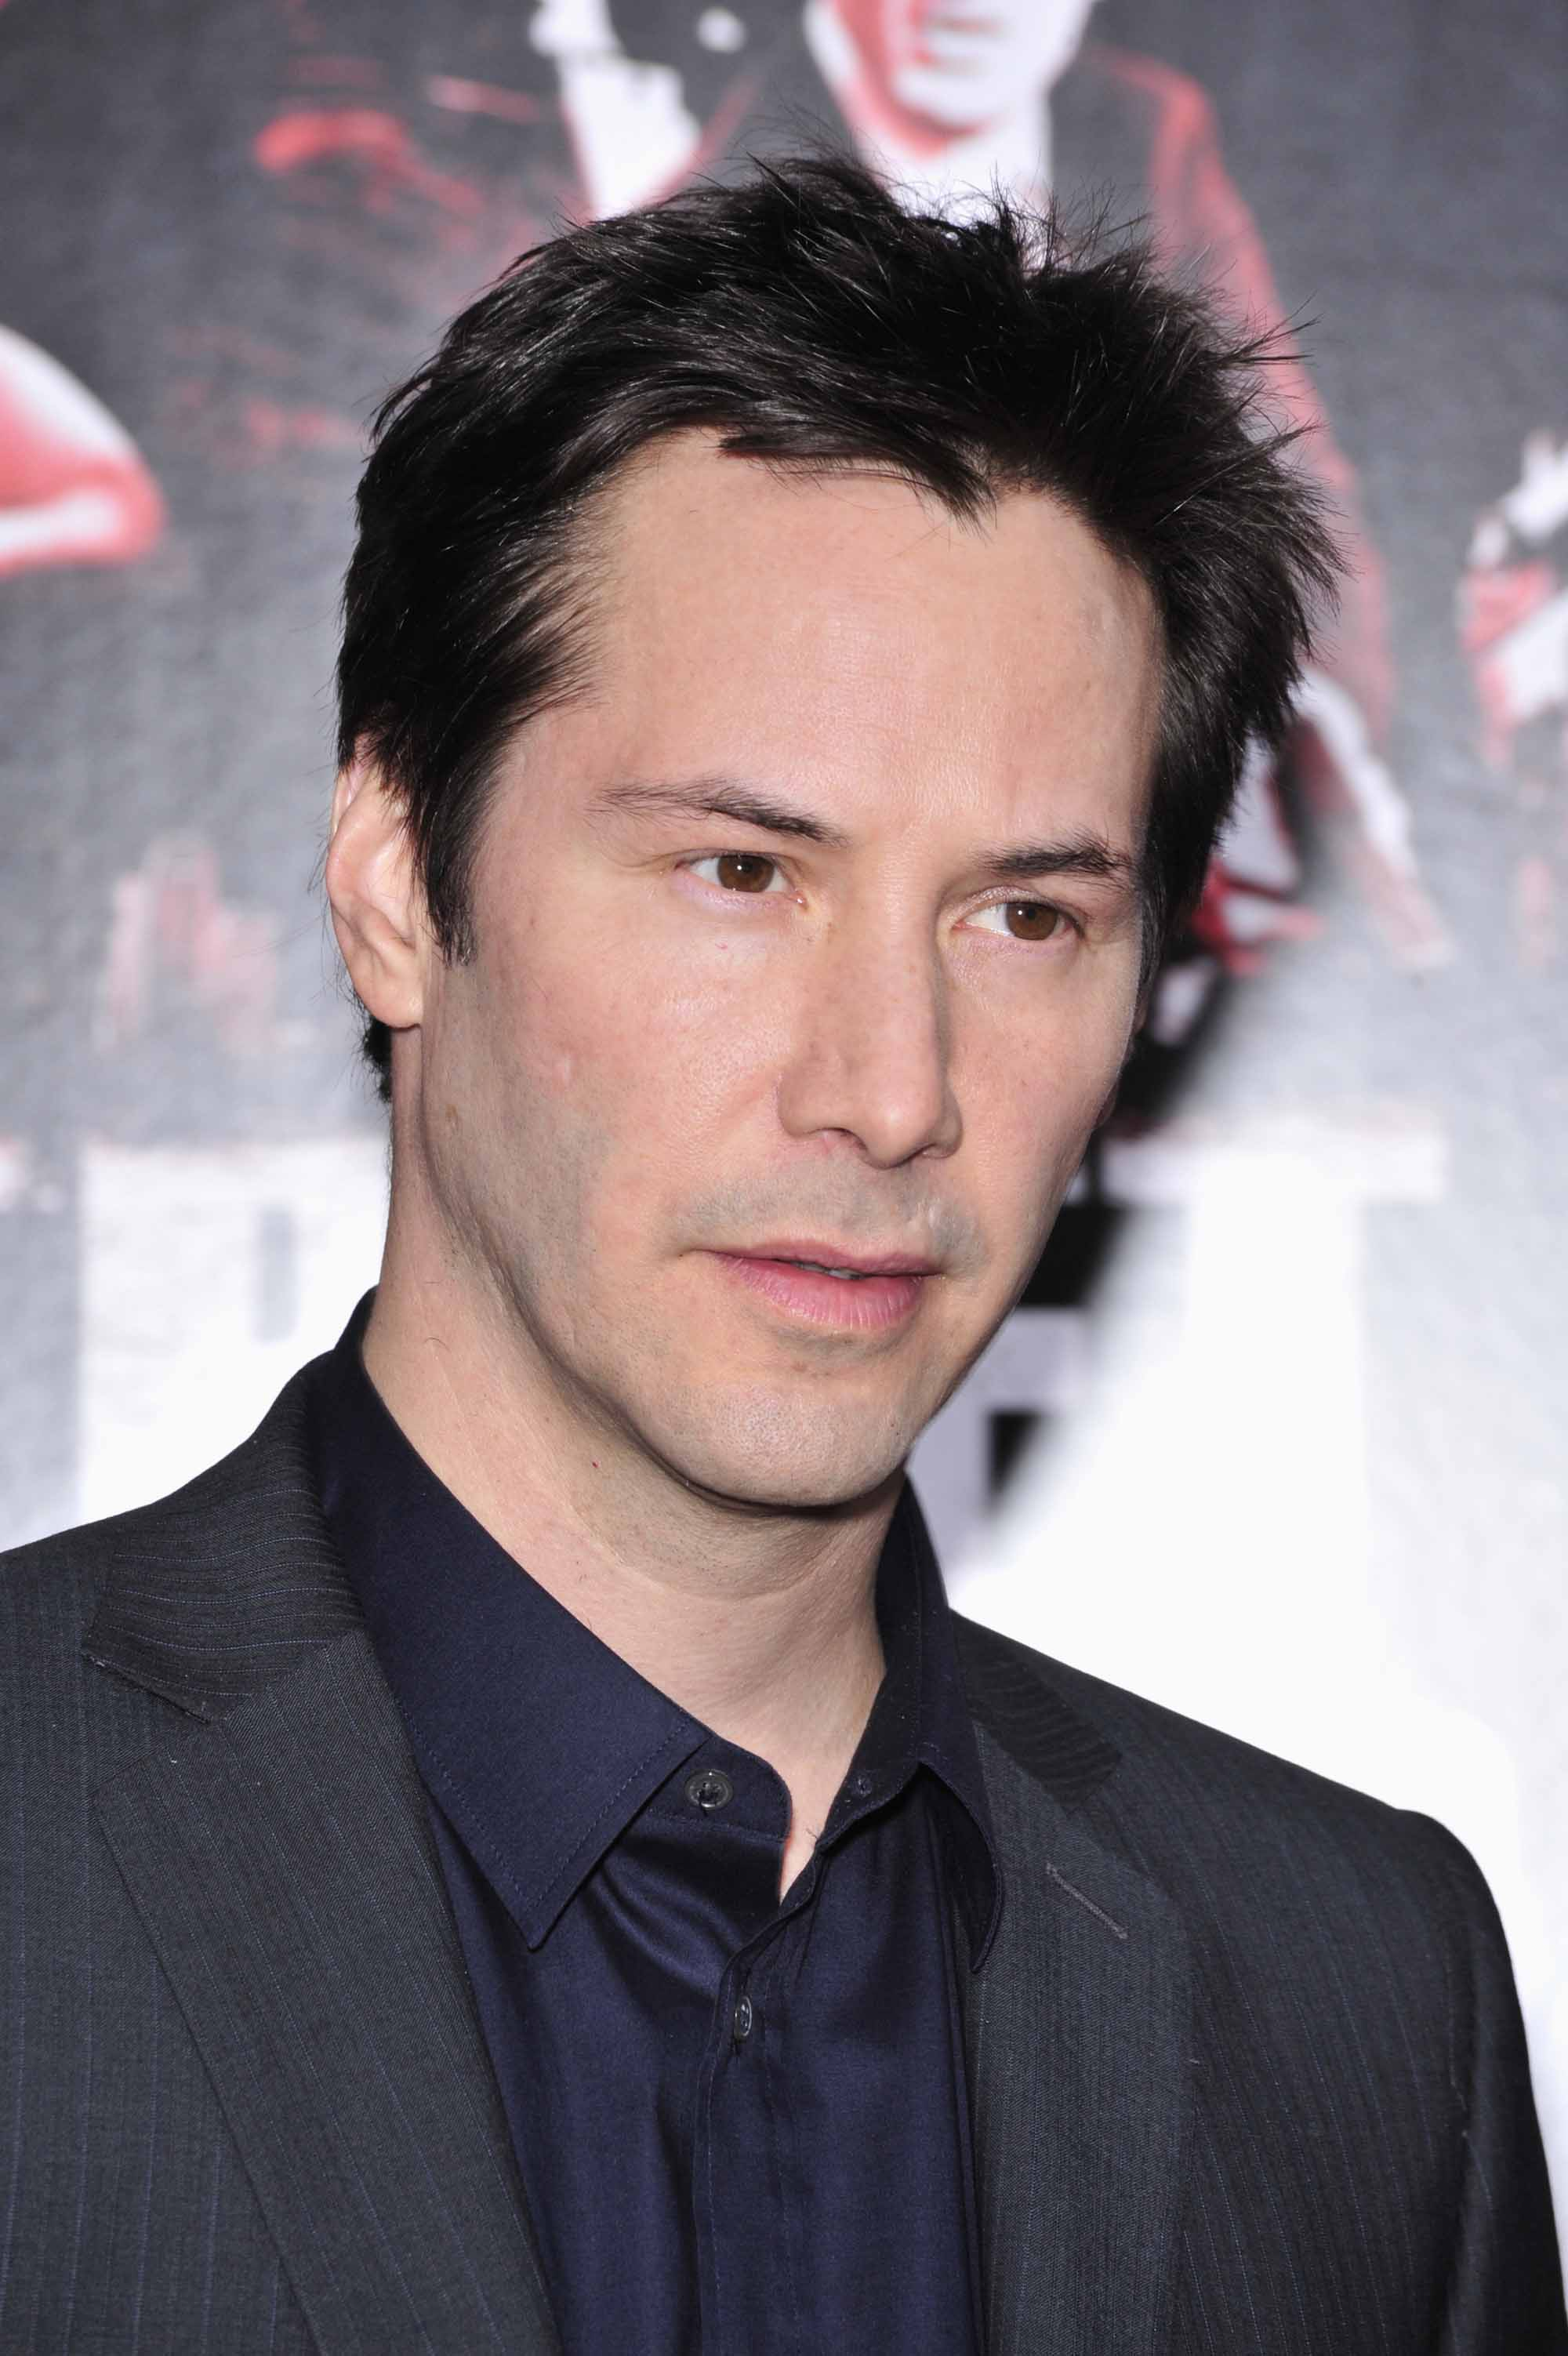 Keanu Reeves The Canadian Encyclopedia